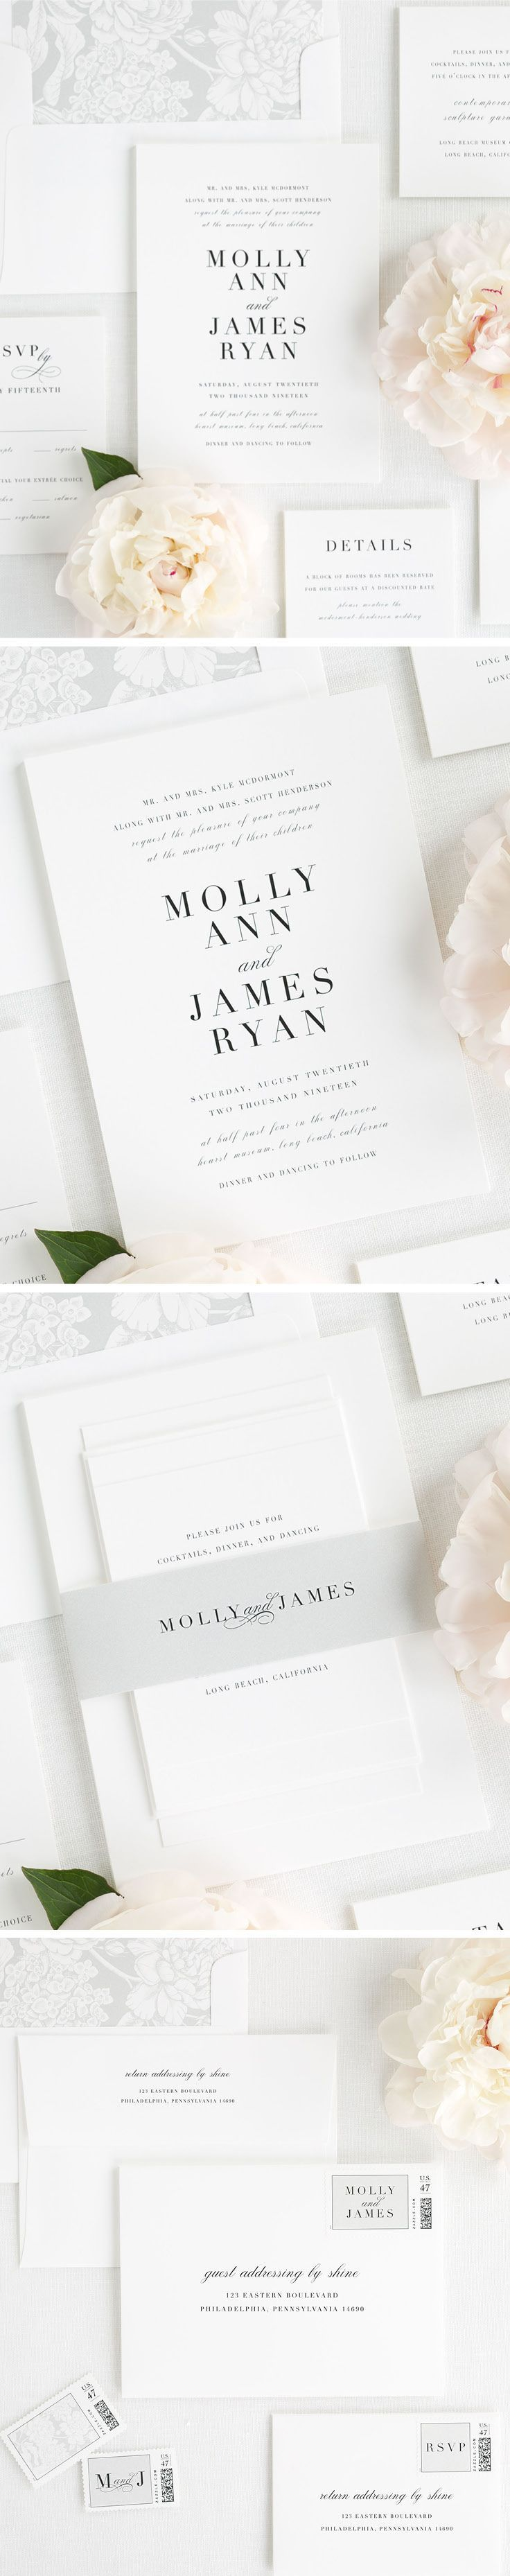 Let your wedding day shine with our 2017 collection design, Serif Romance. This simple and classic wedding invitation mixes a romantic serif font and soft script to make a big statement. This wedding invitation suite features a pretty gray floral envelope